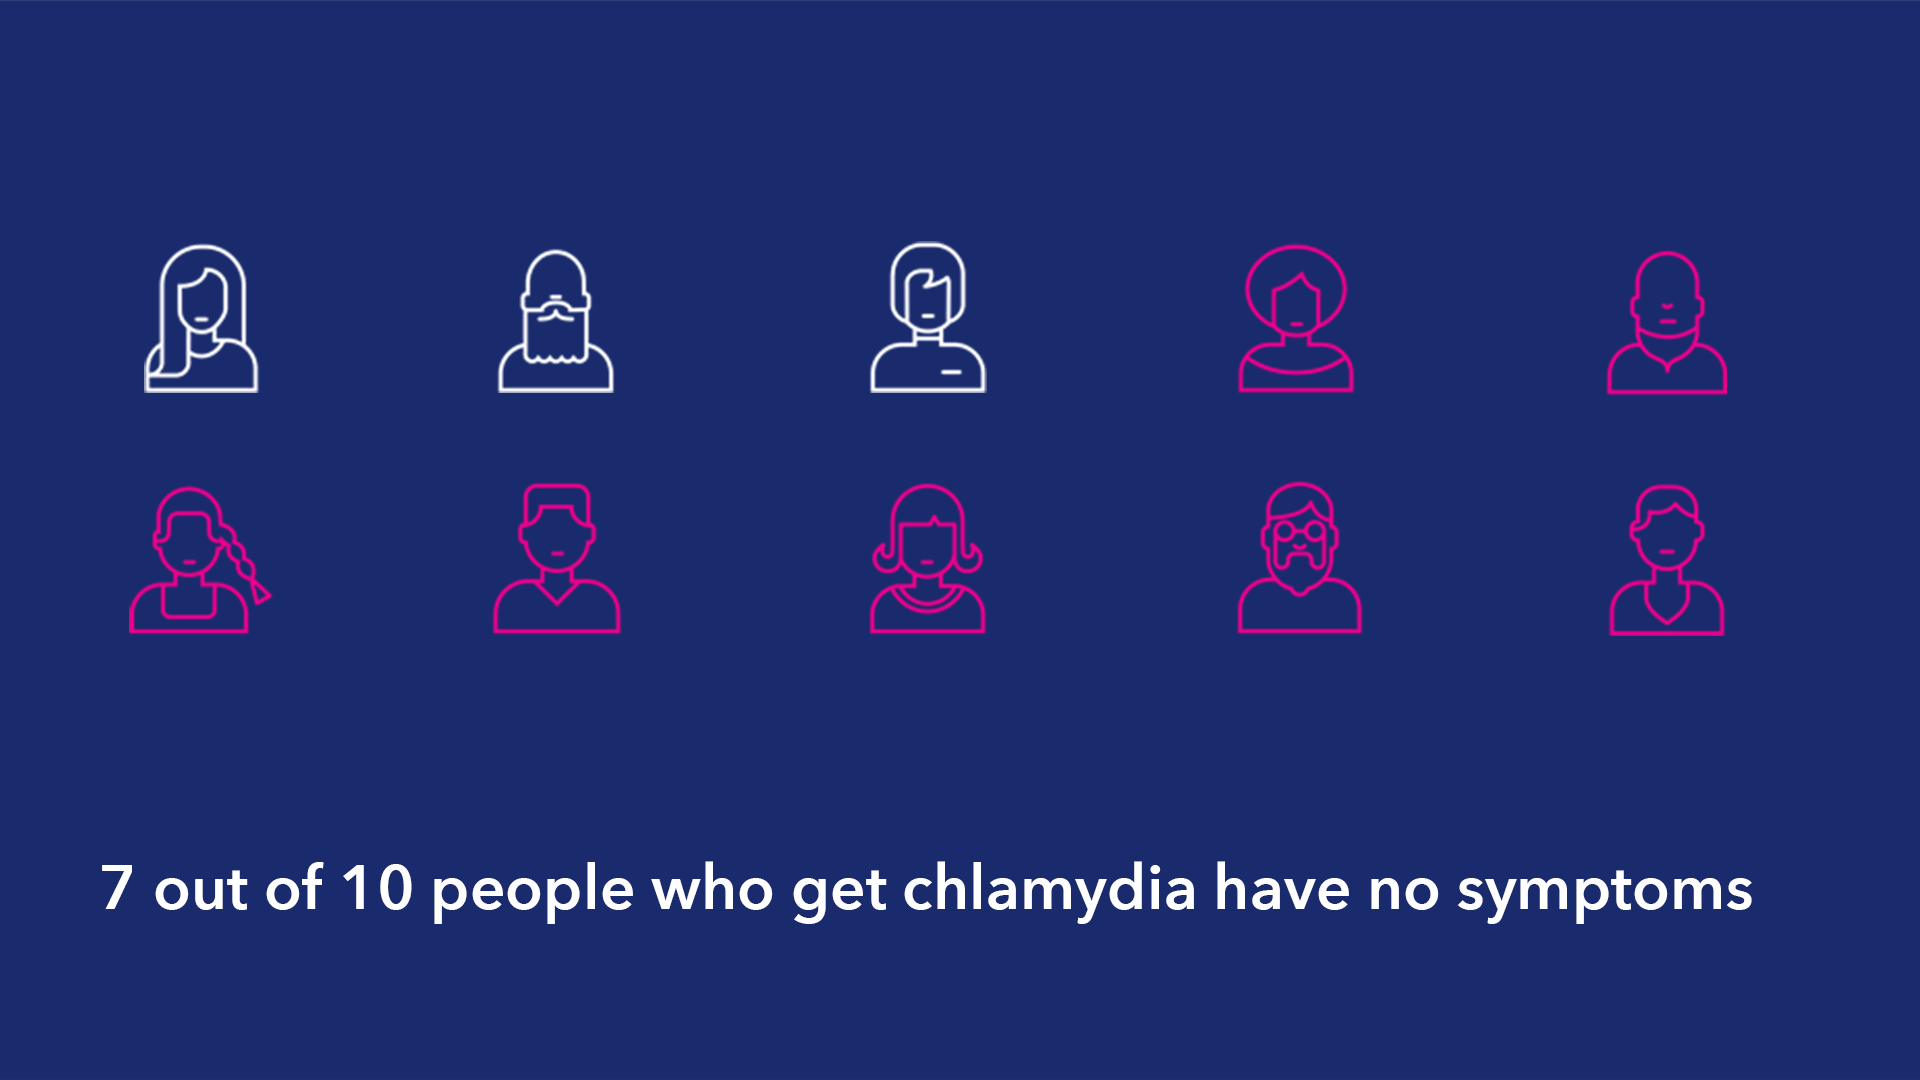 7/10 people show no symptoms, which is why chlamydia testing is so important